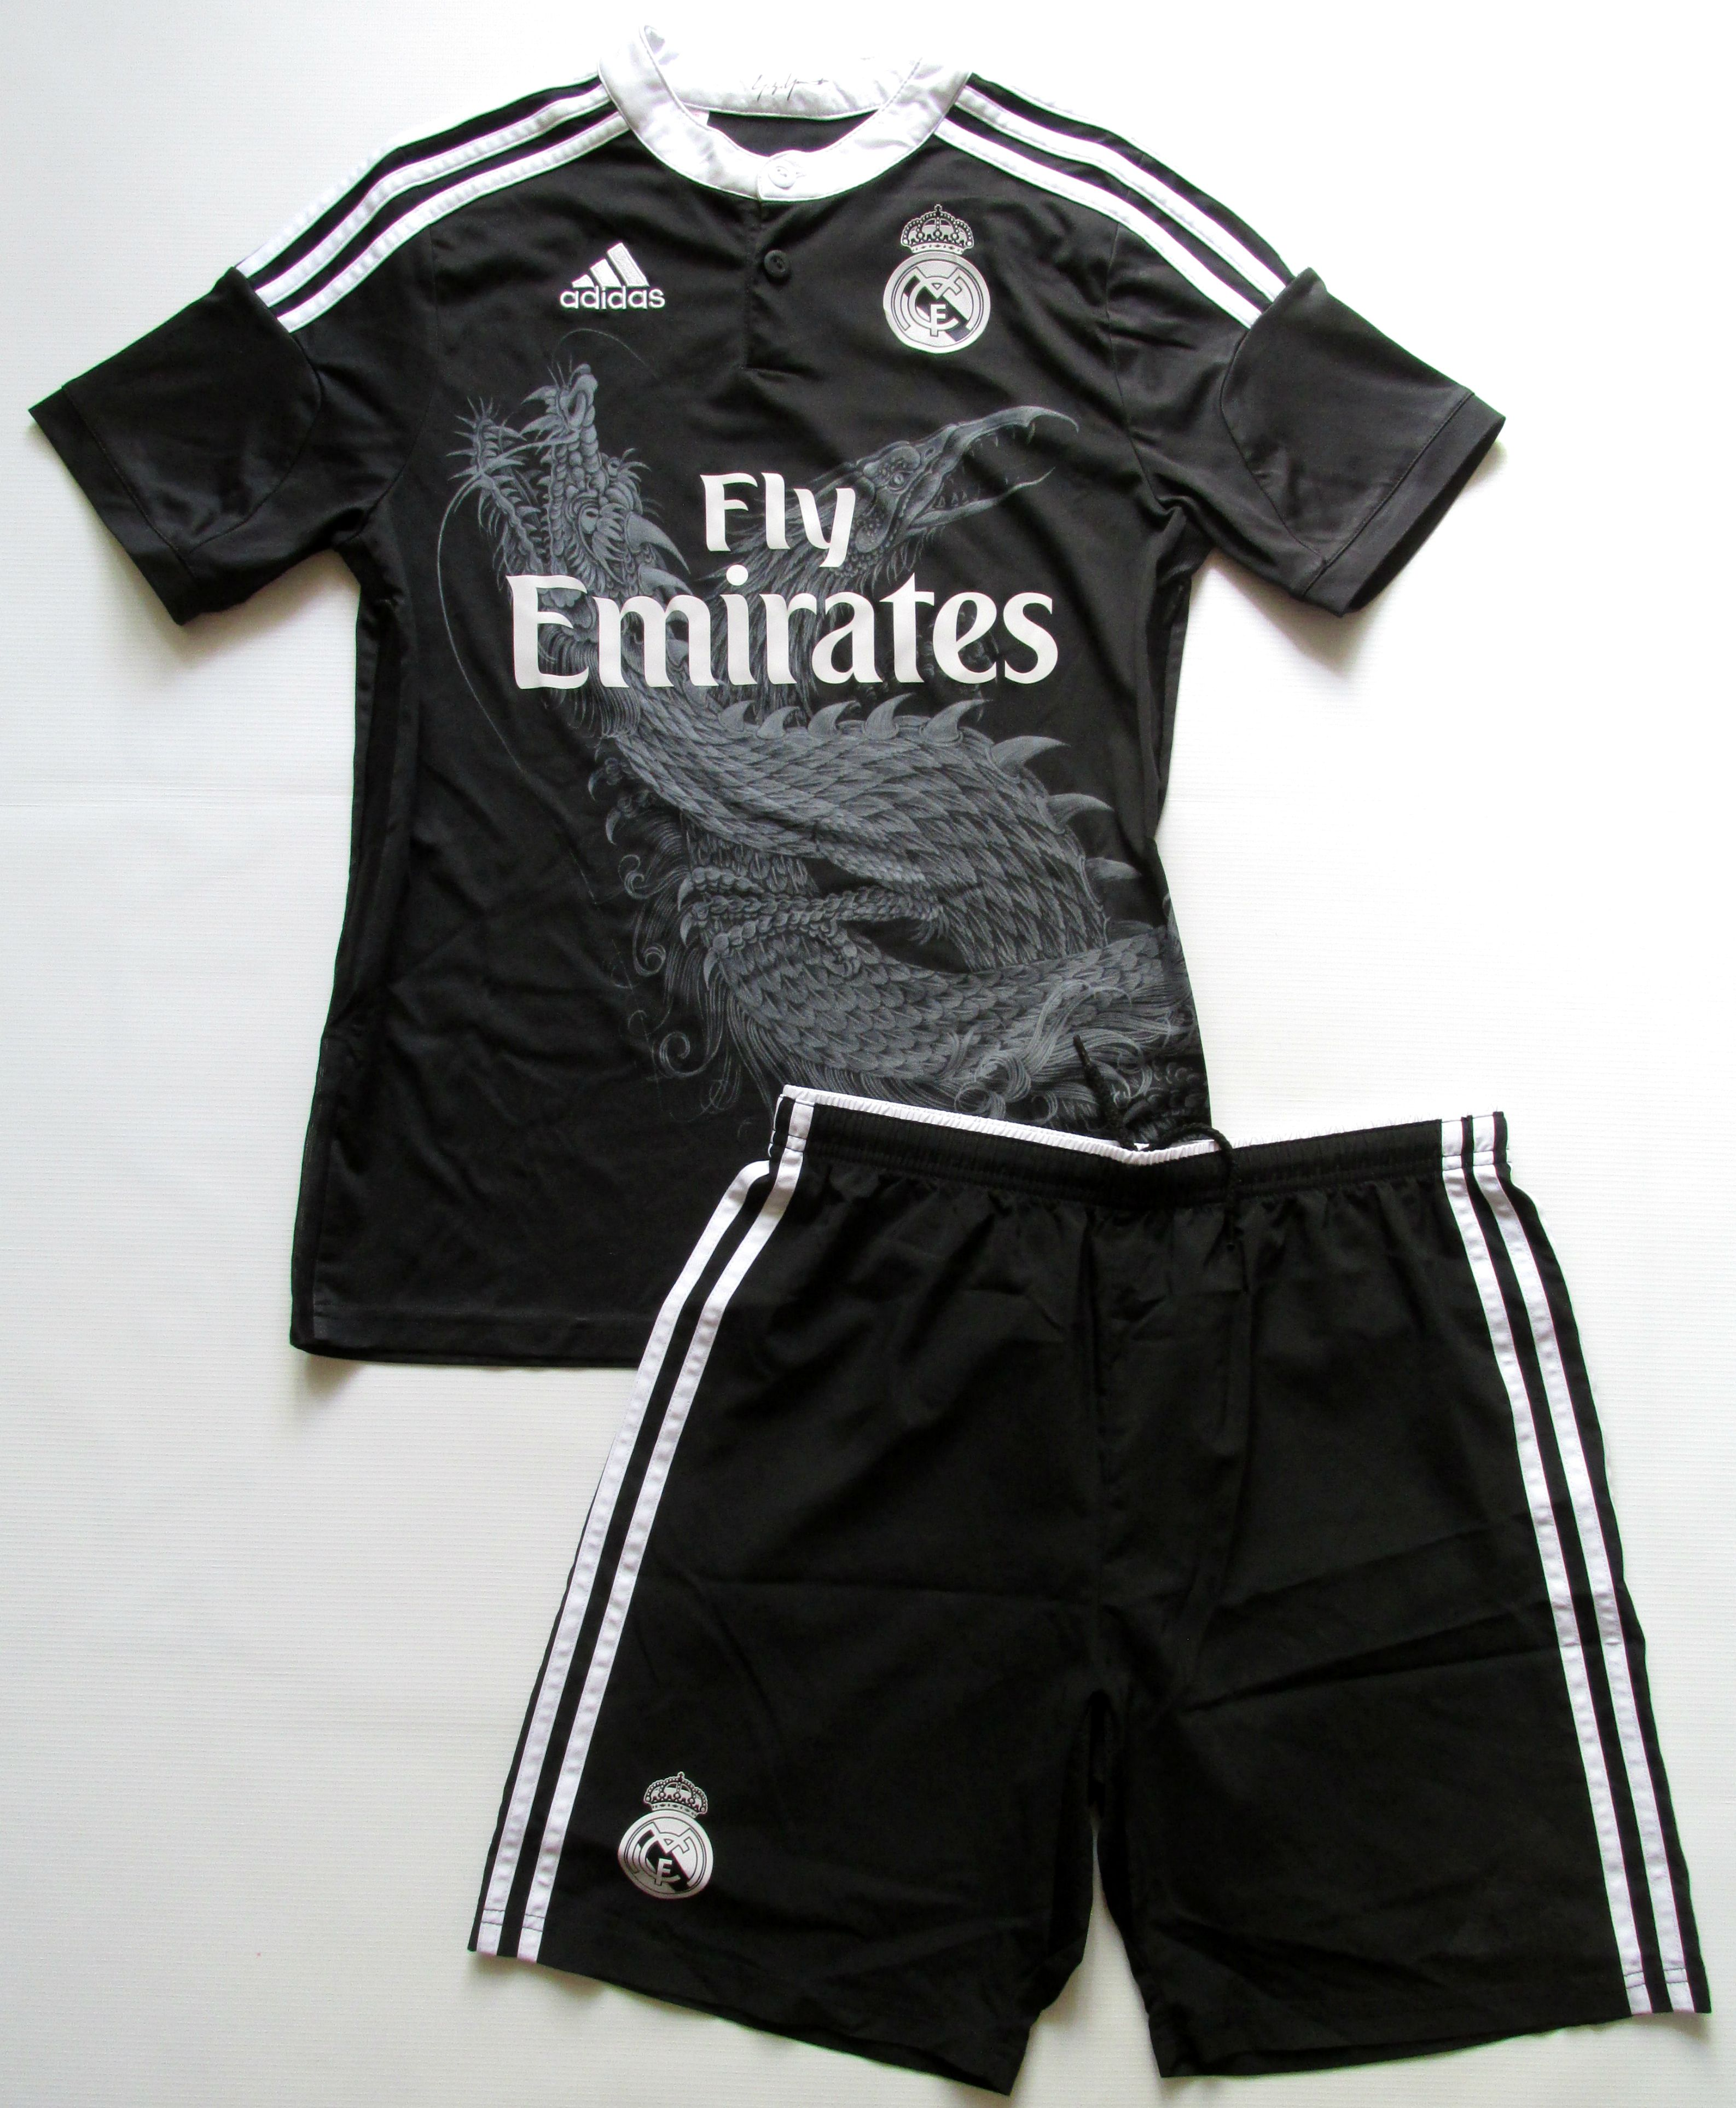 Real Madrid 2014 2015 Third Football Kit By Adidas Yohji Yamamoto Realmadrid Madrid Rmfc Madridis Vintage Football Shirts Orange T Shirts Football Pants